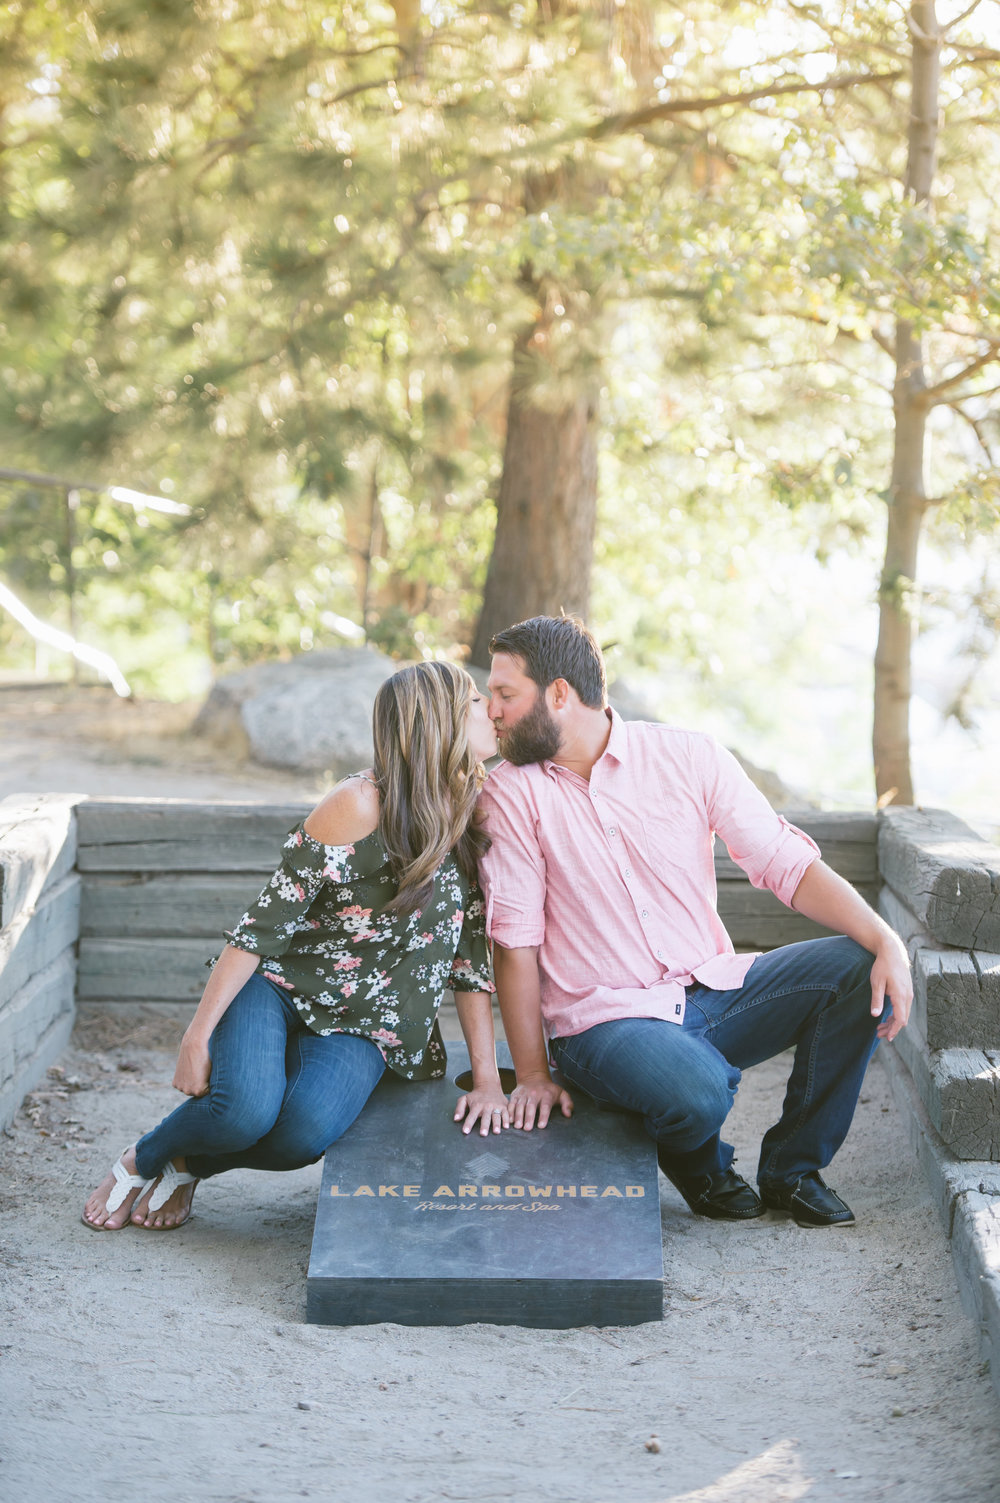 05Lake Arrowhead Engagement Pictures.jpg